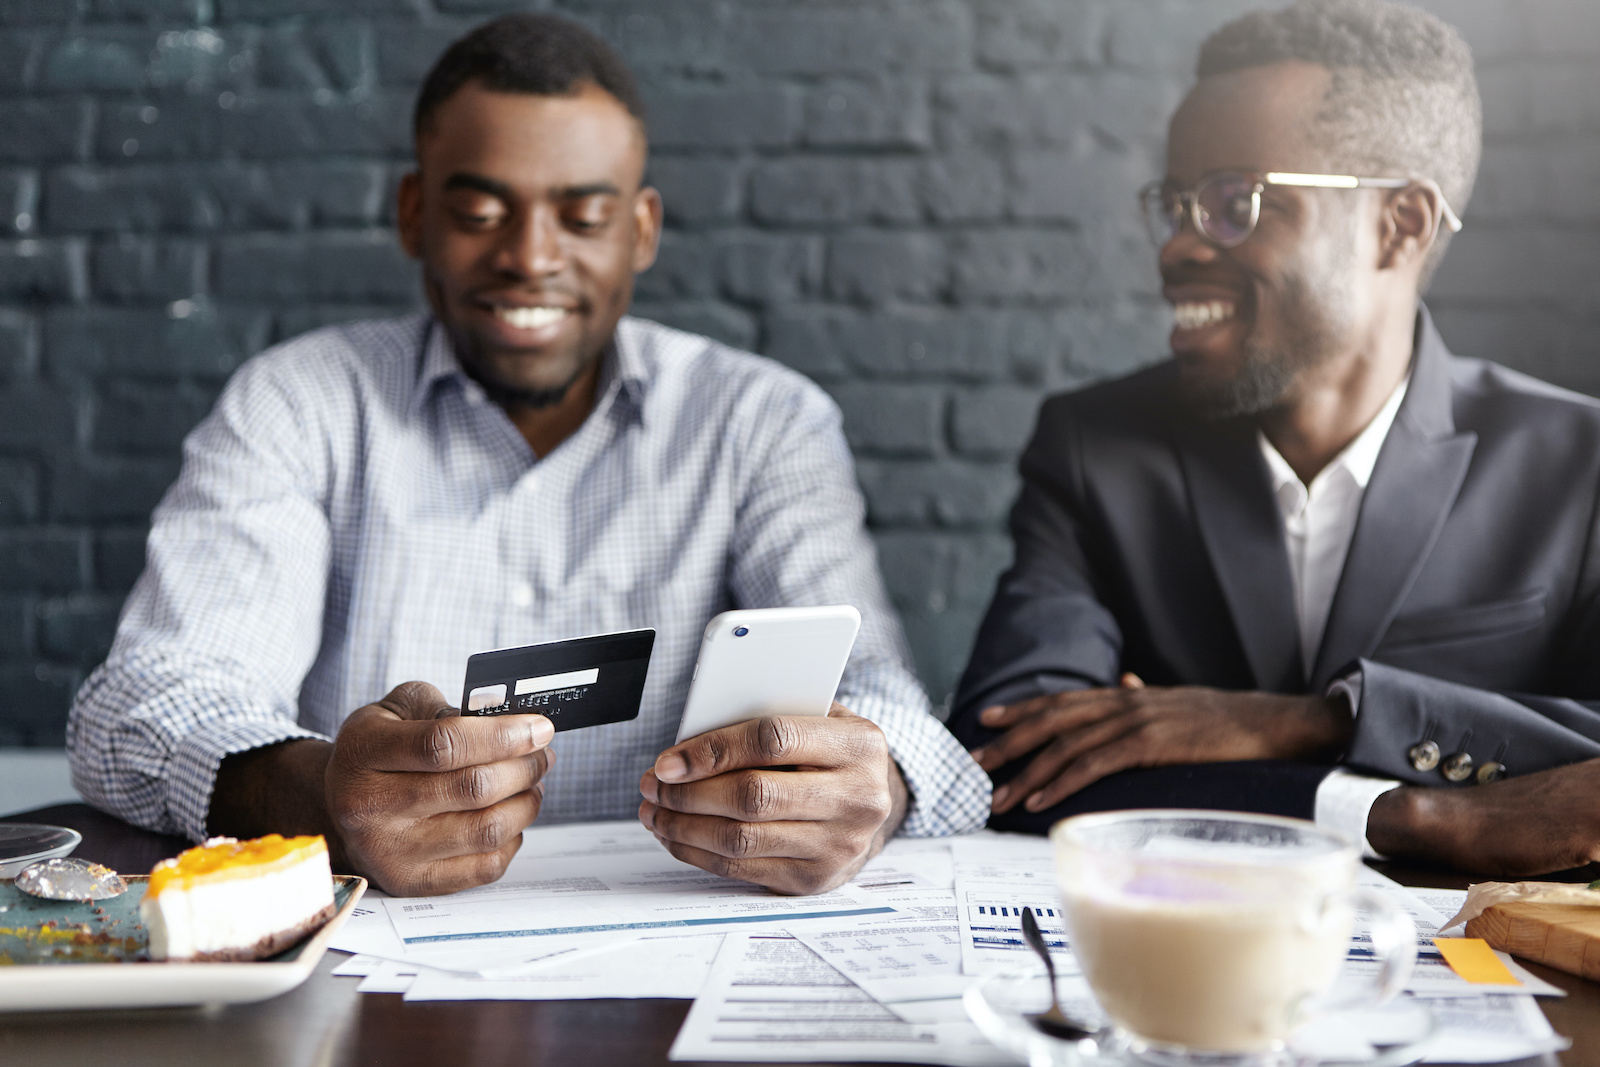 The best way to build credit: Two men look at a credit card and credit documents